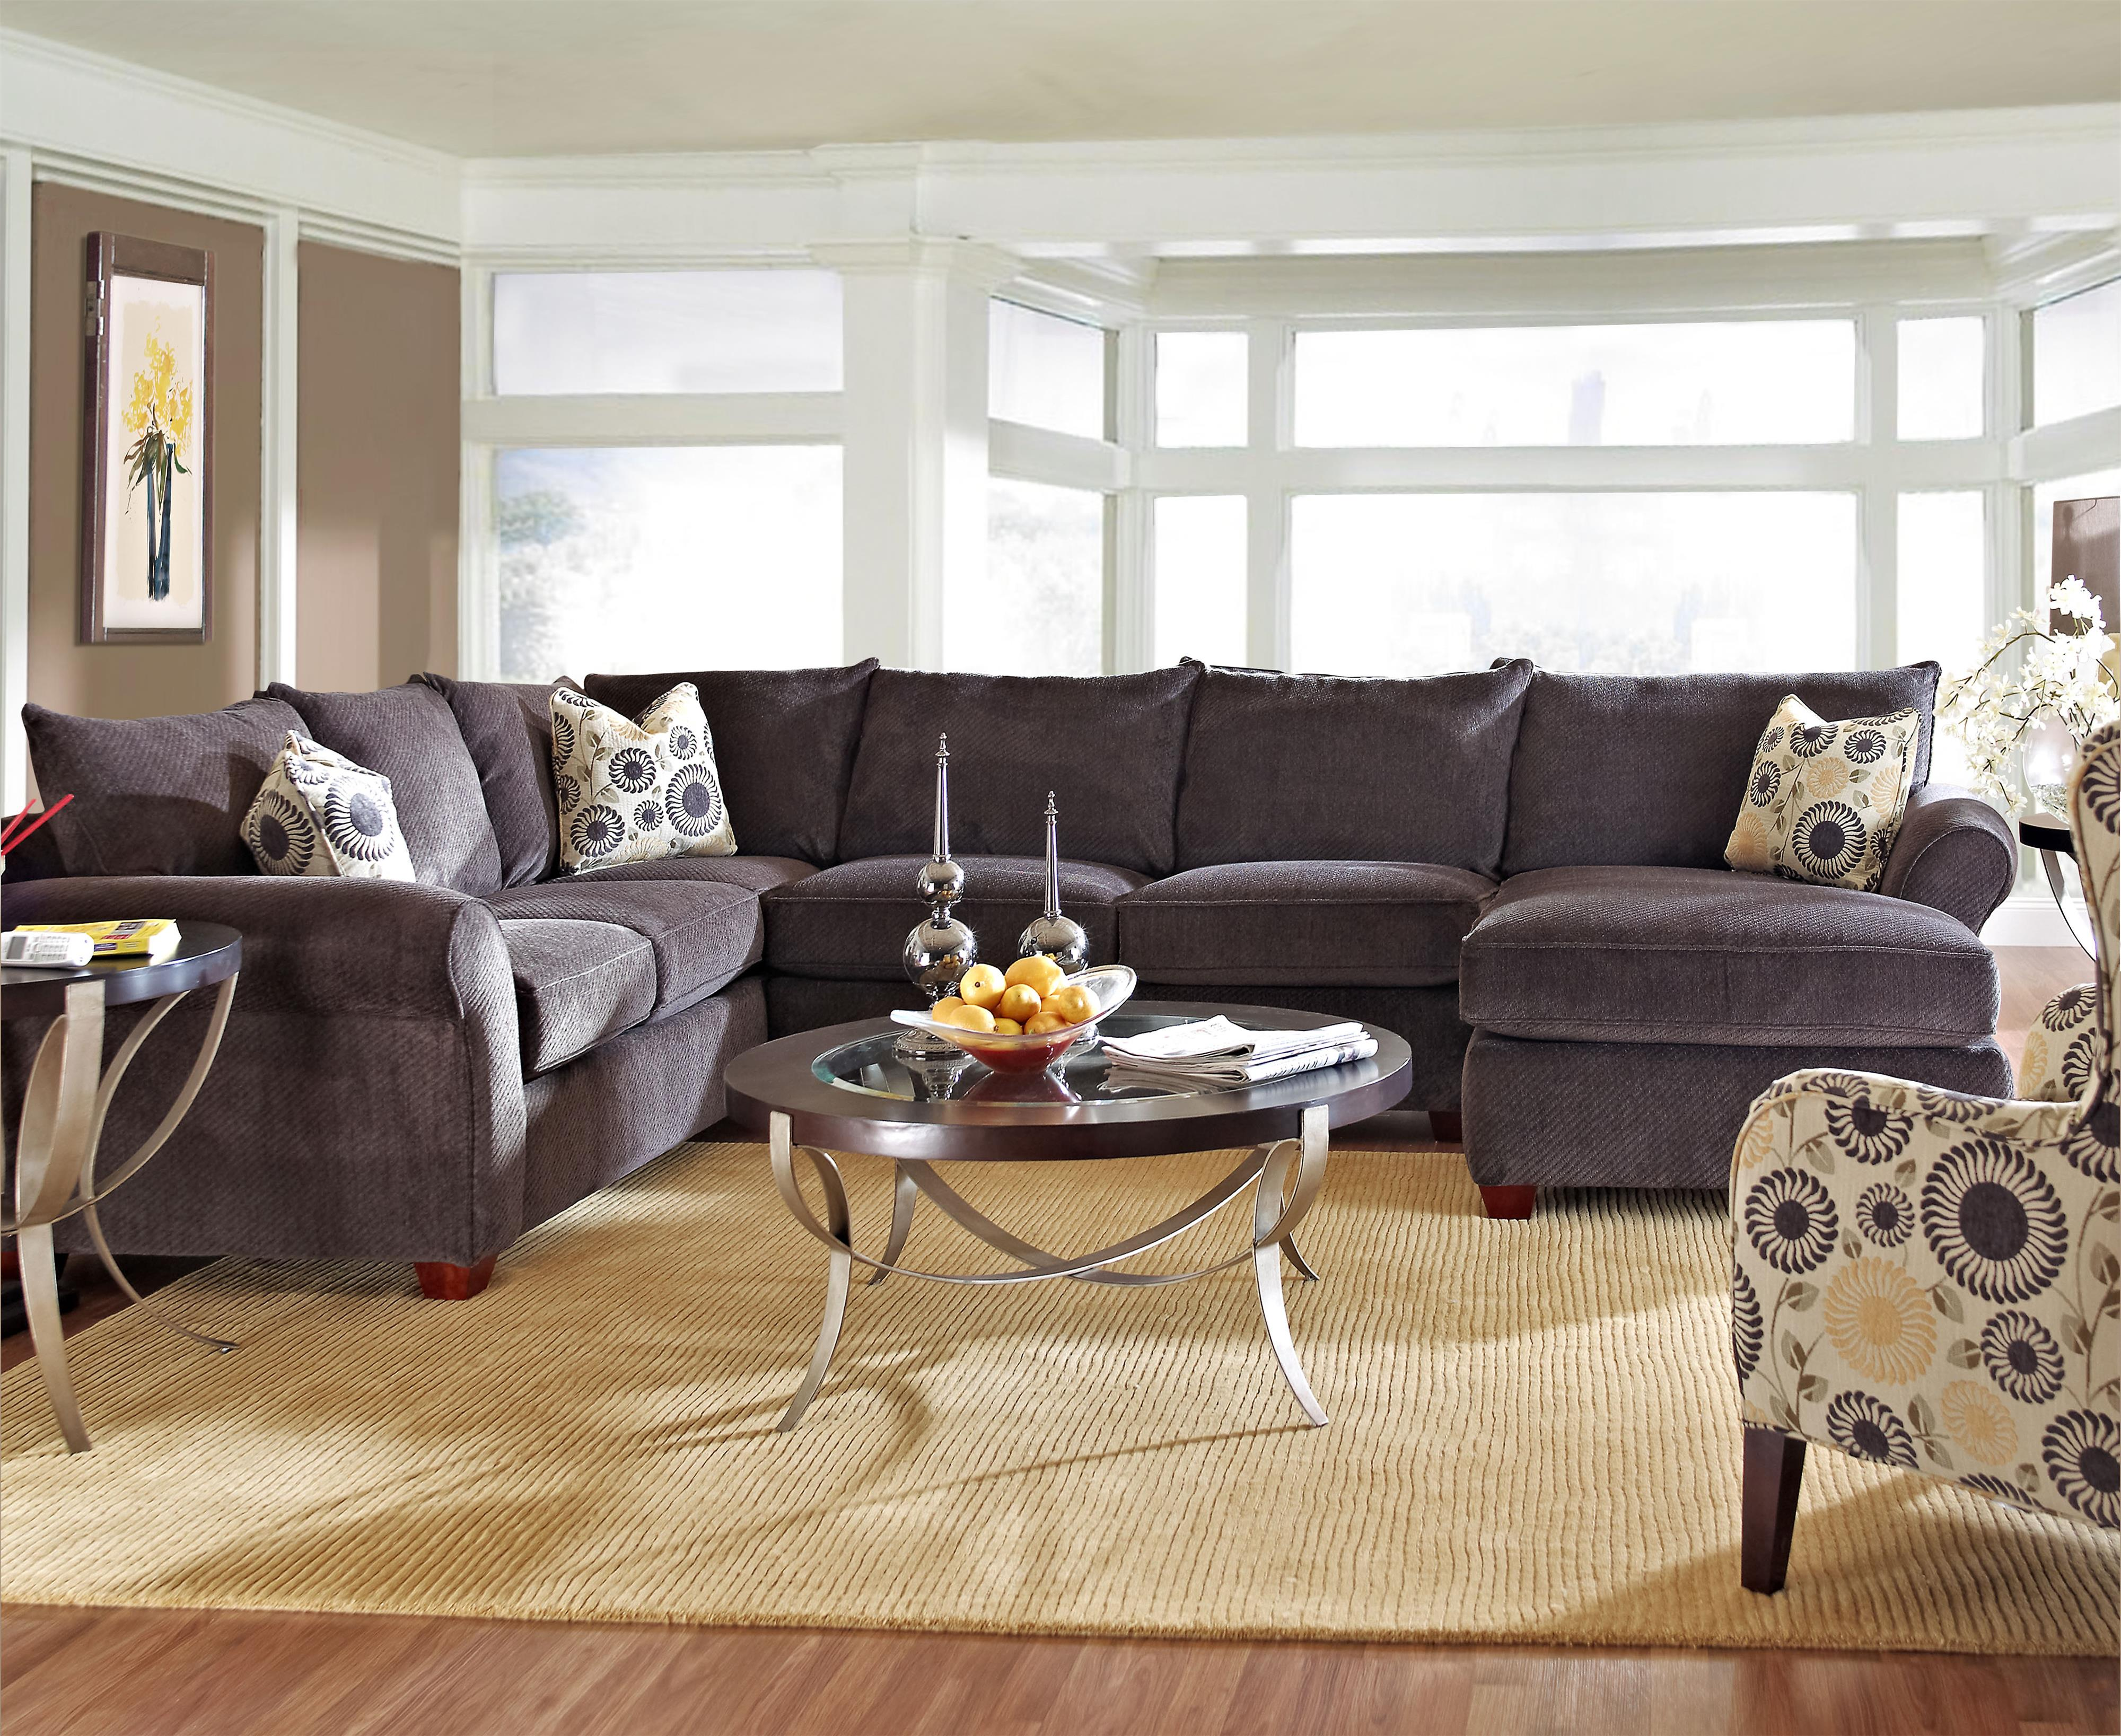 Klaussner Fletcher Sectional Sofa - Item Number: 36300LCRNS+ALS+RCHASE-PoisePewter